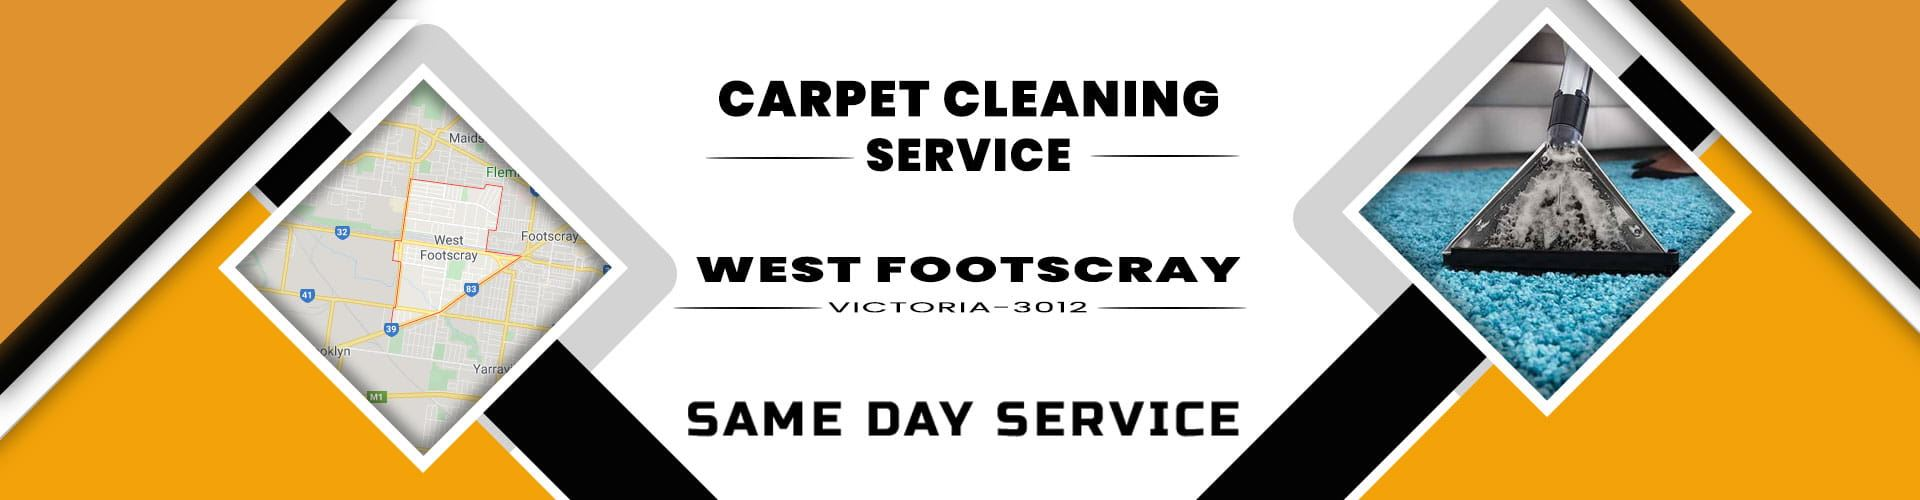 Carpet Cleaning West Footscray